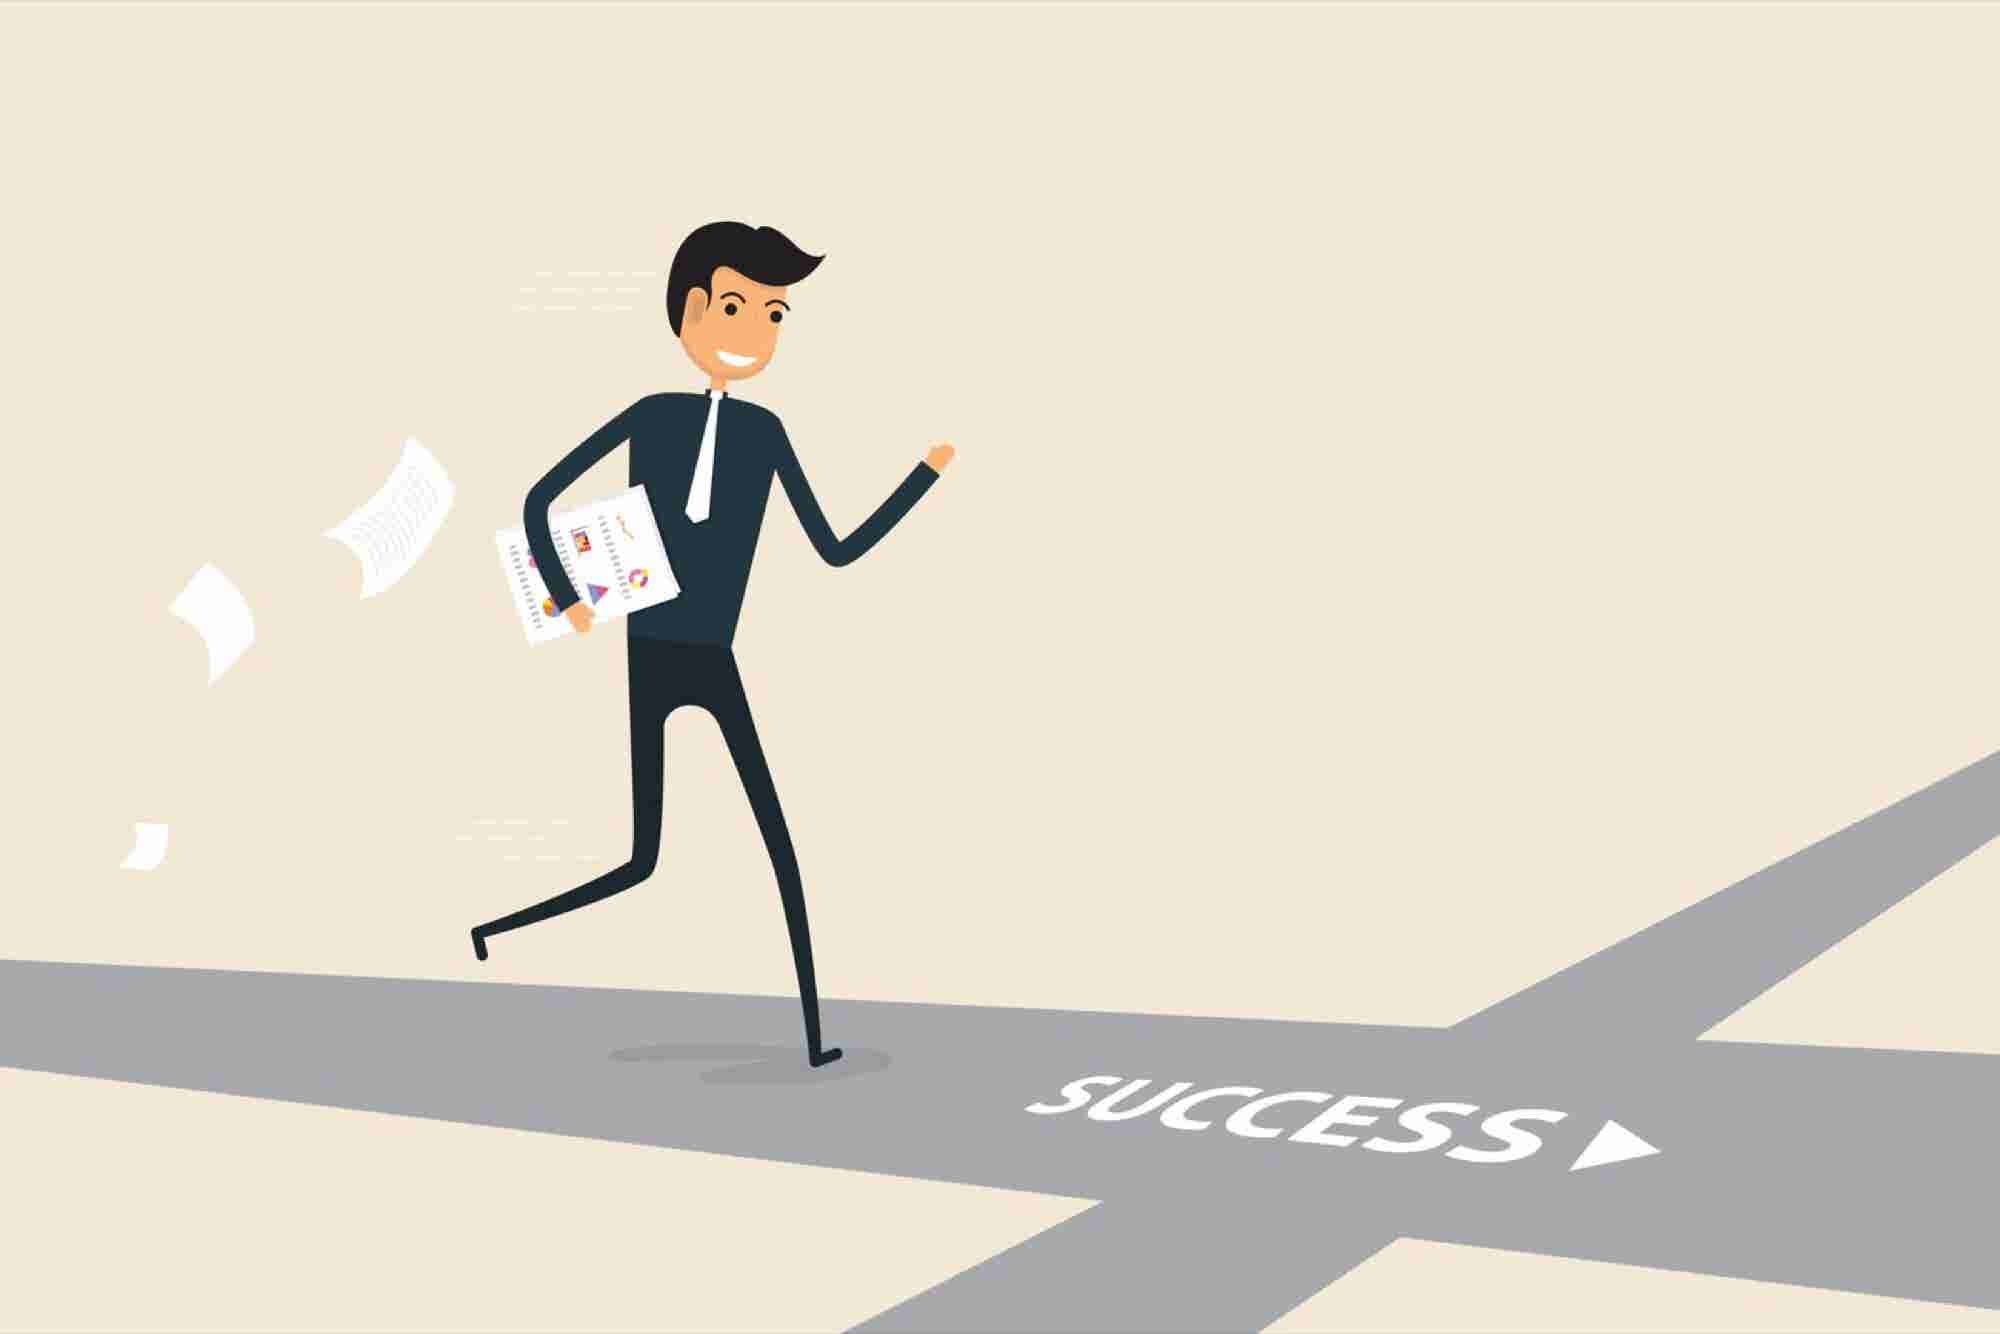 Don't Let Hyper-Growth Derail Your Startup: Tips For Startup CEOs